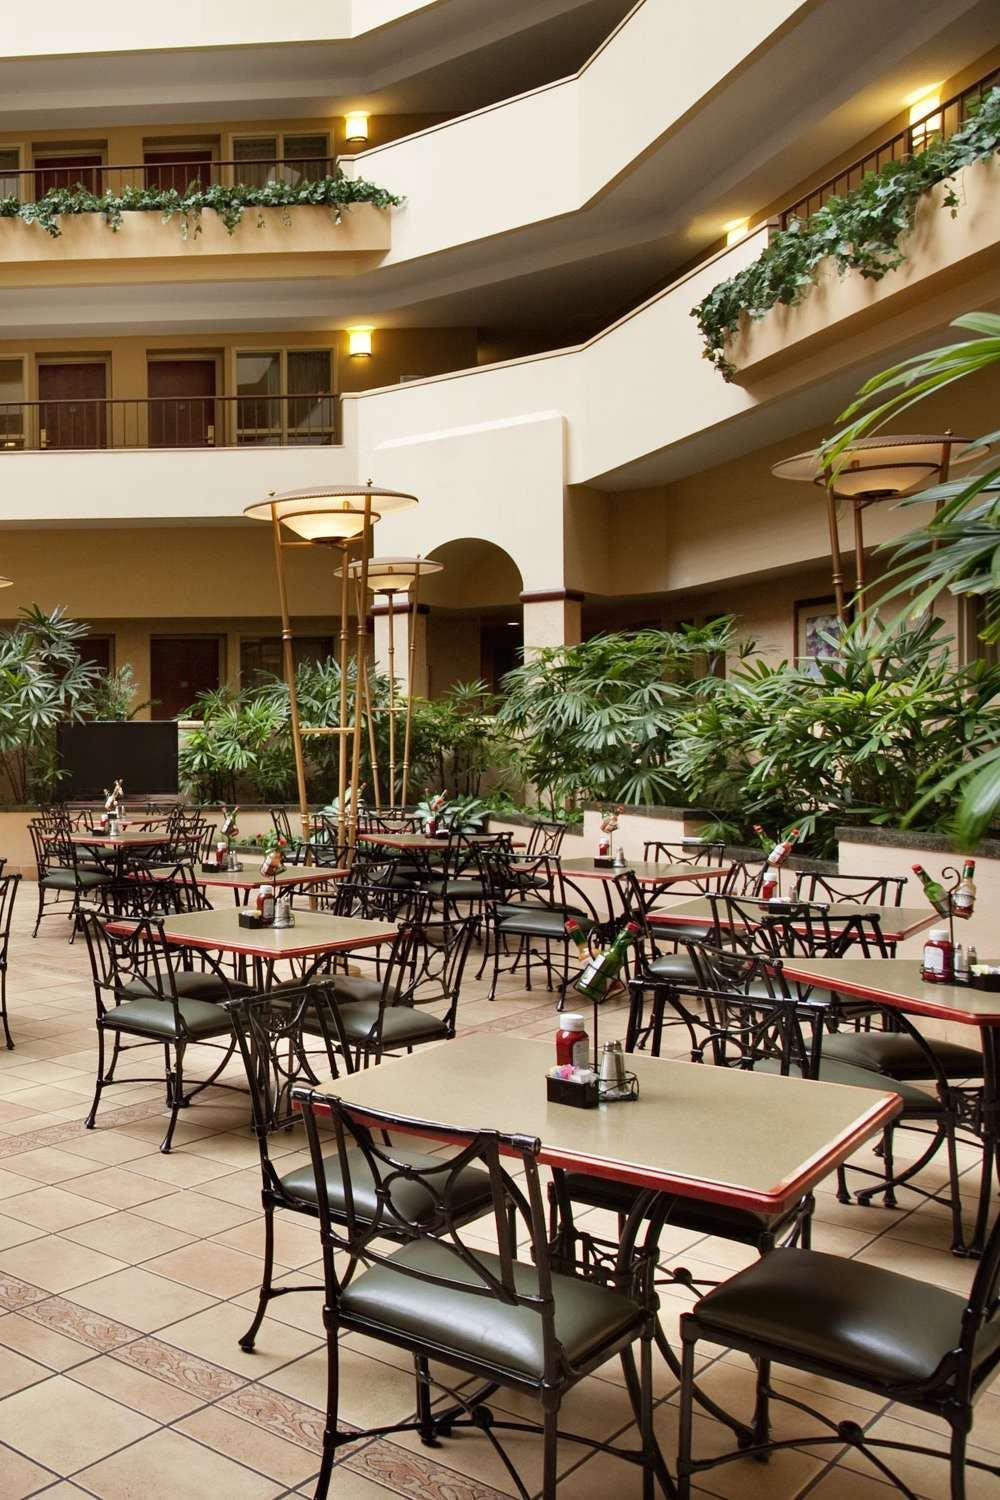 Embassy Suites Columbia - Greystone